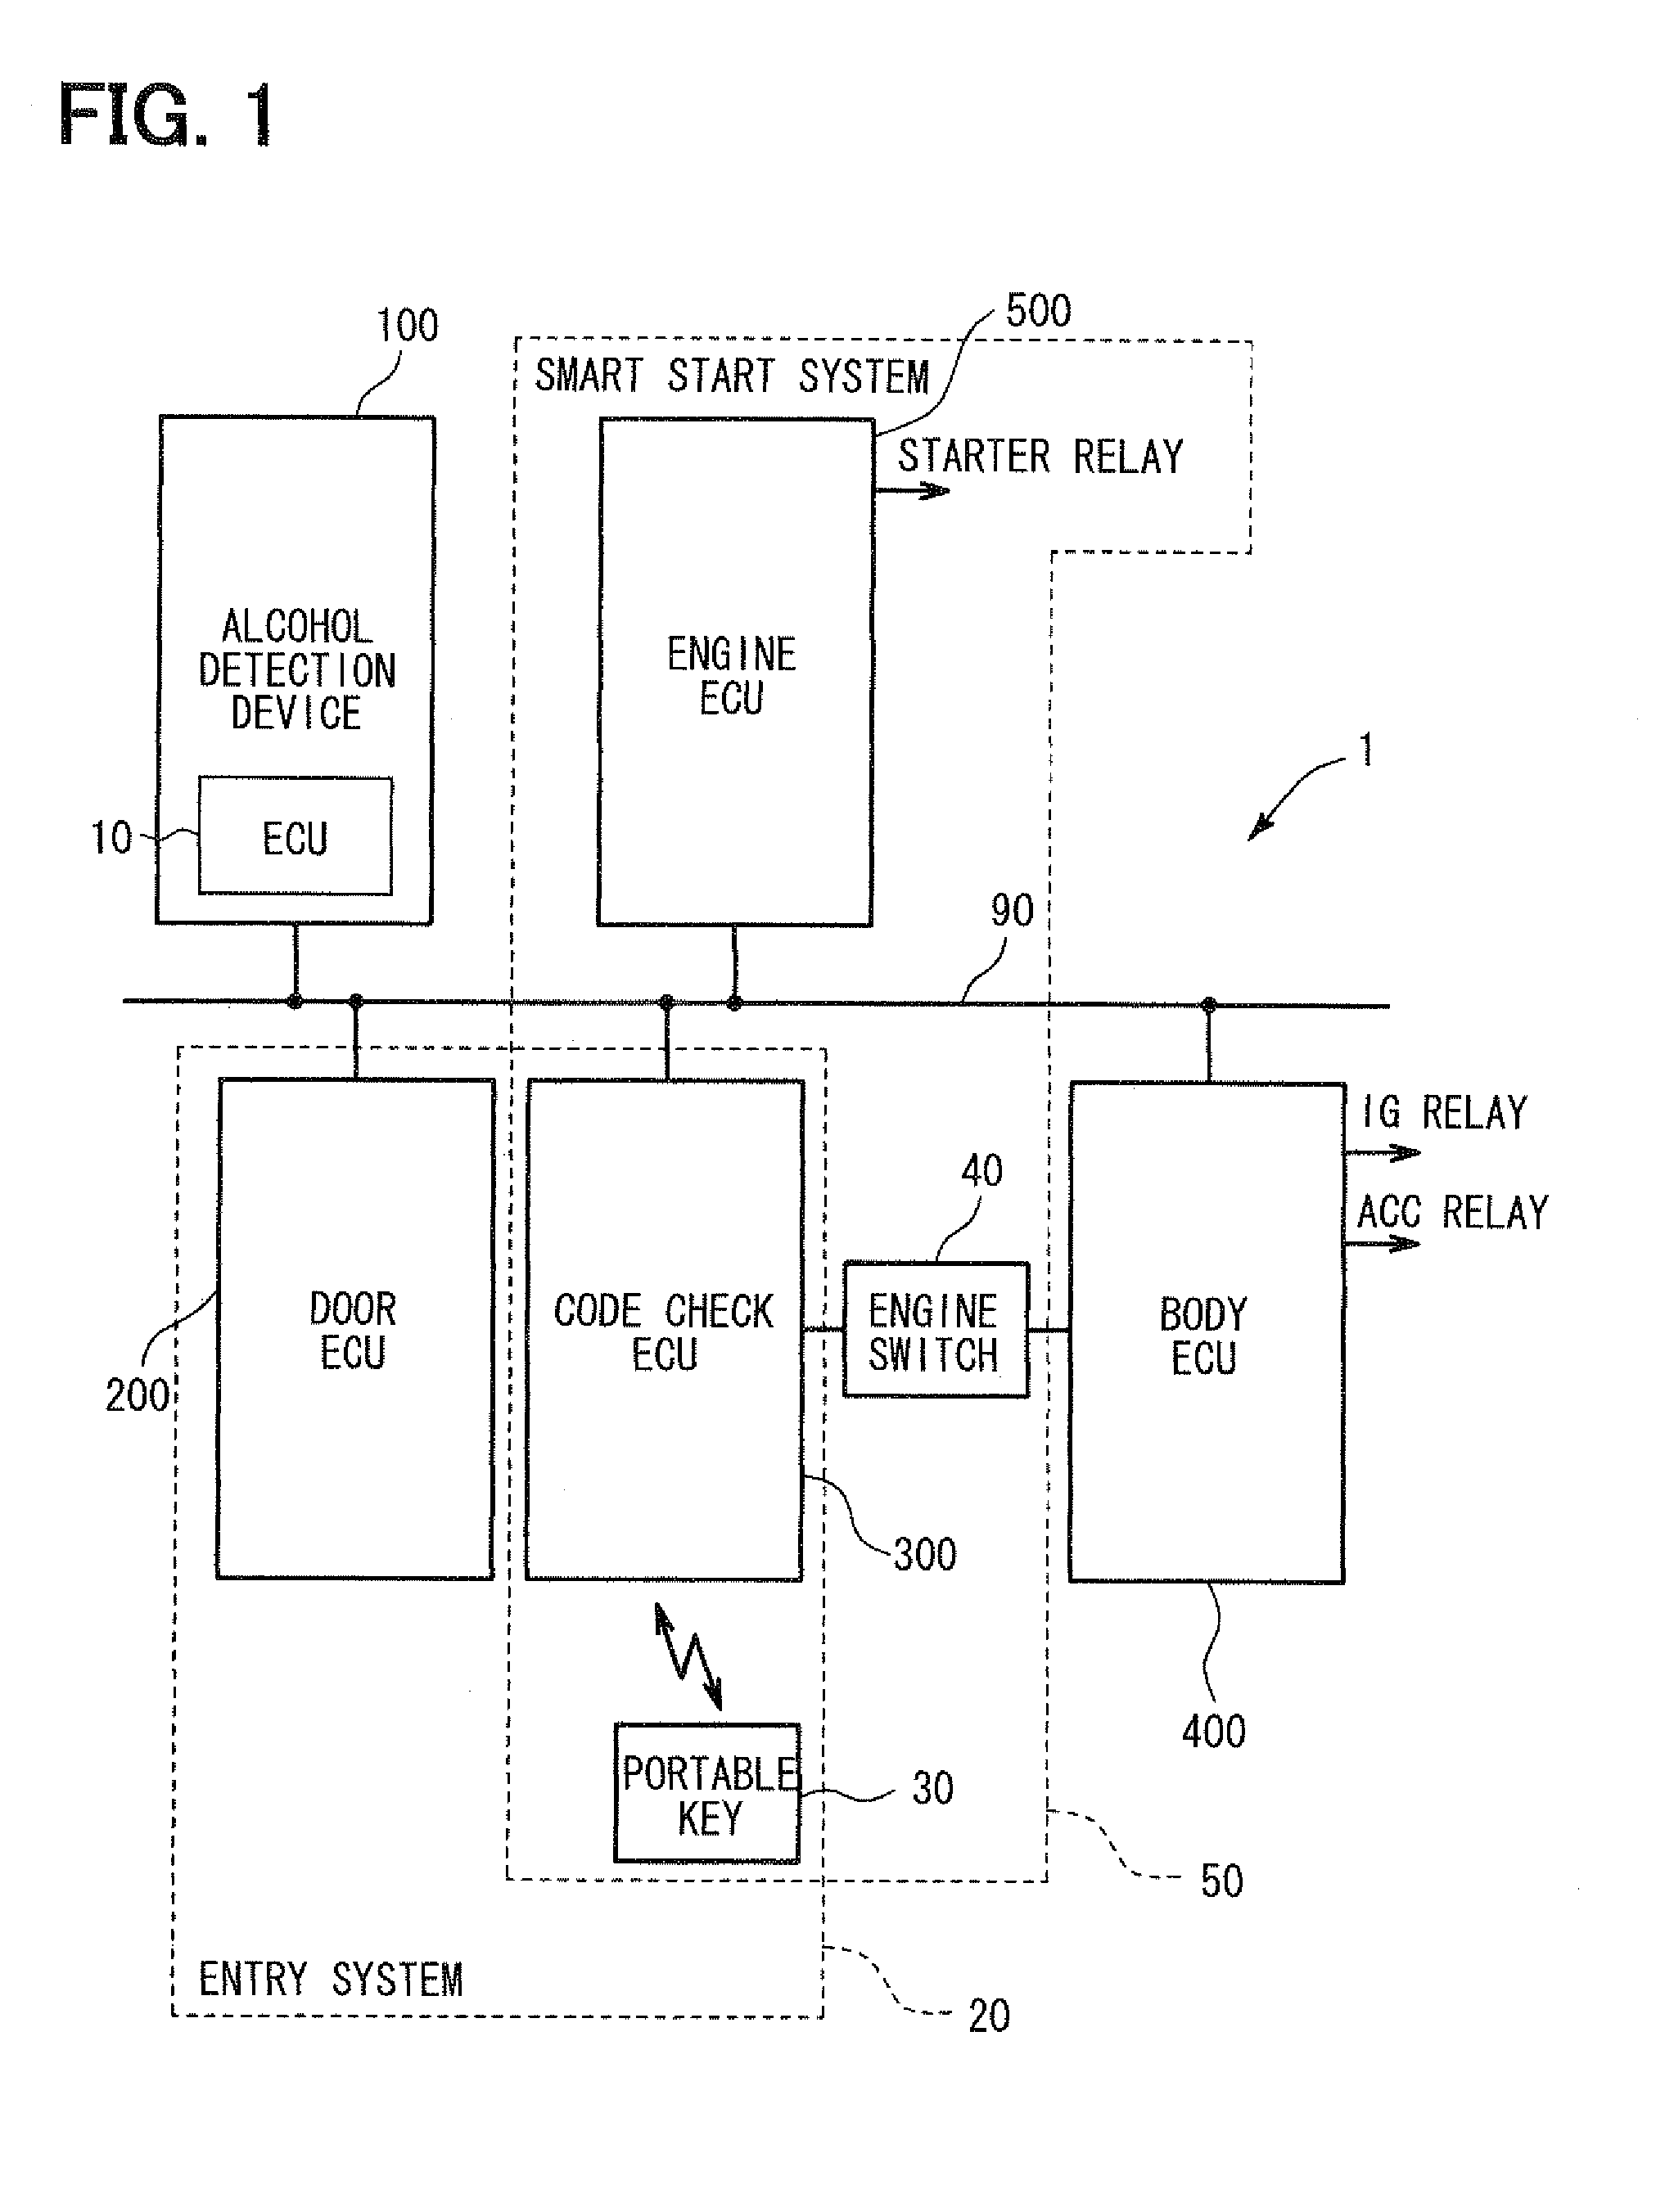 Patent US Alcohol detection system and method